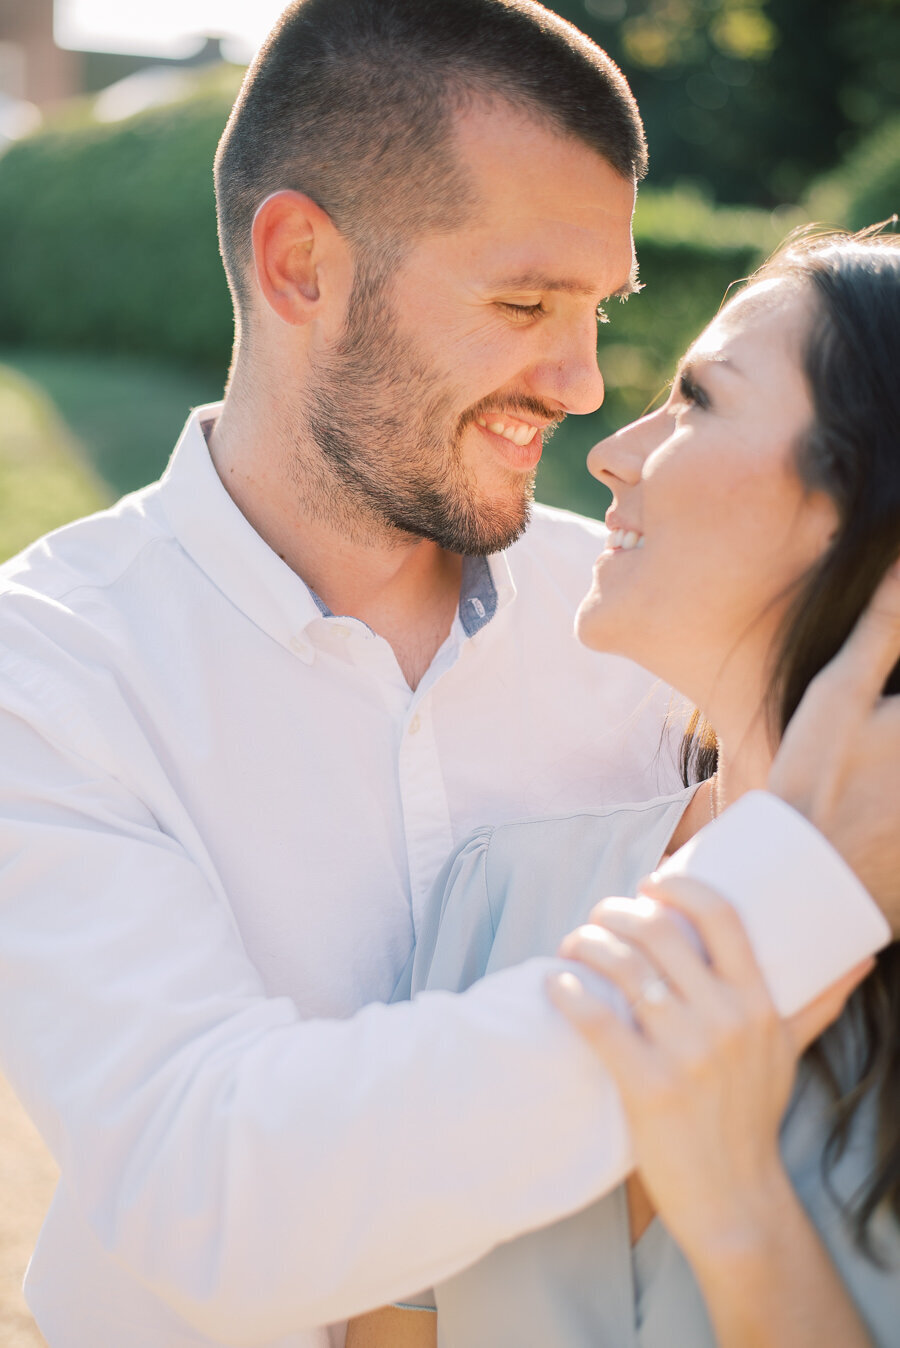 William_Paca_Gardens_Engagement_Session_Megan_Harris_Photography-6